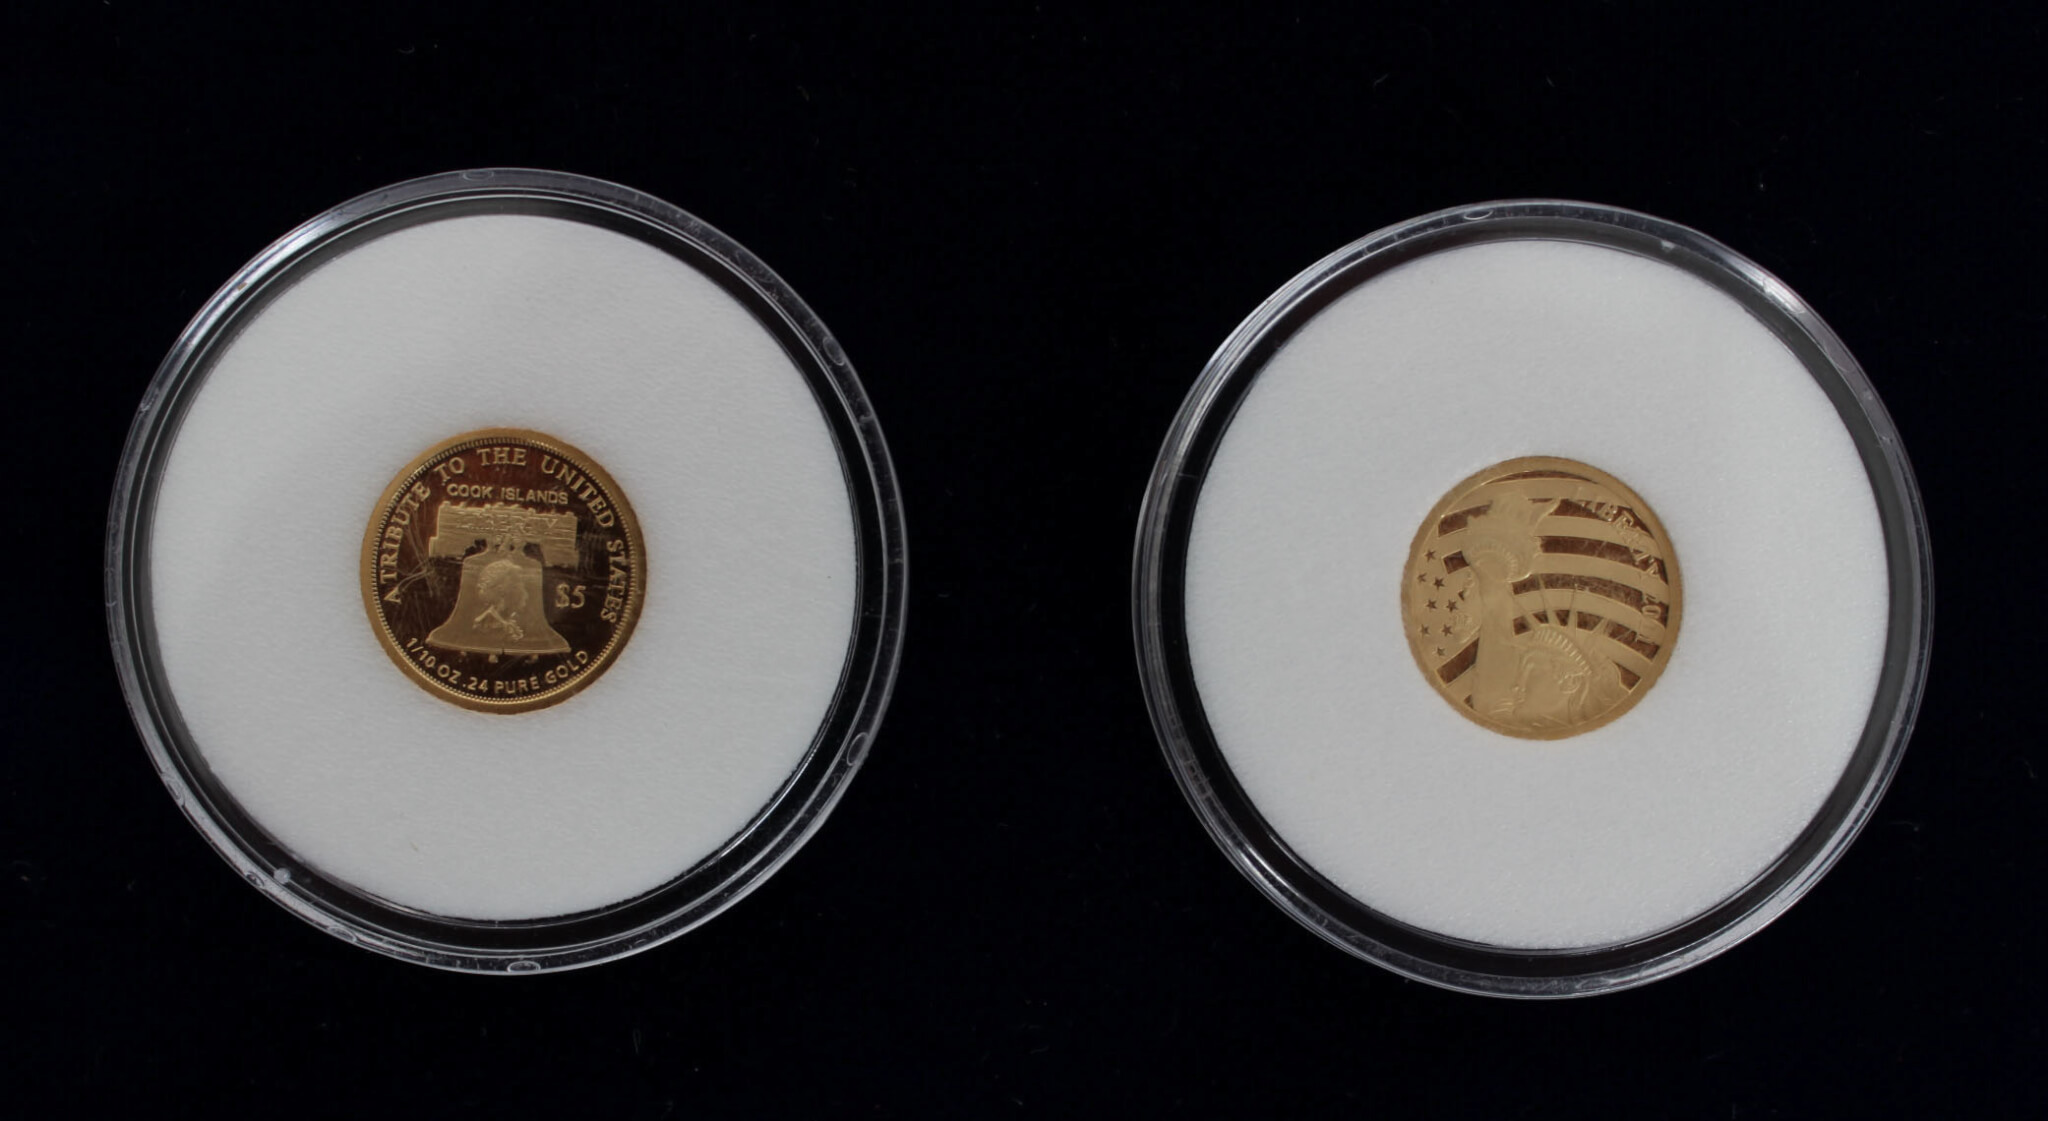 $ 5 American Statue Of Liberty 1/10 Oz Gold Coins8875_01